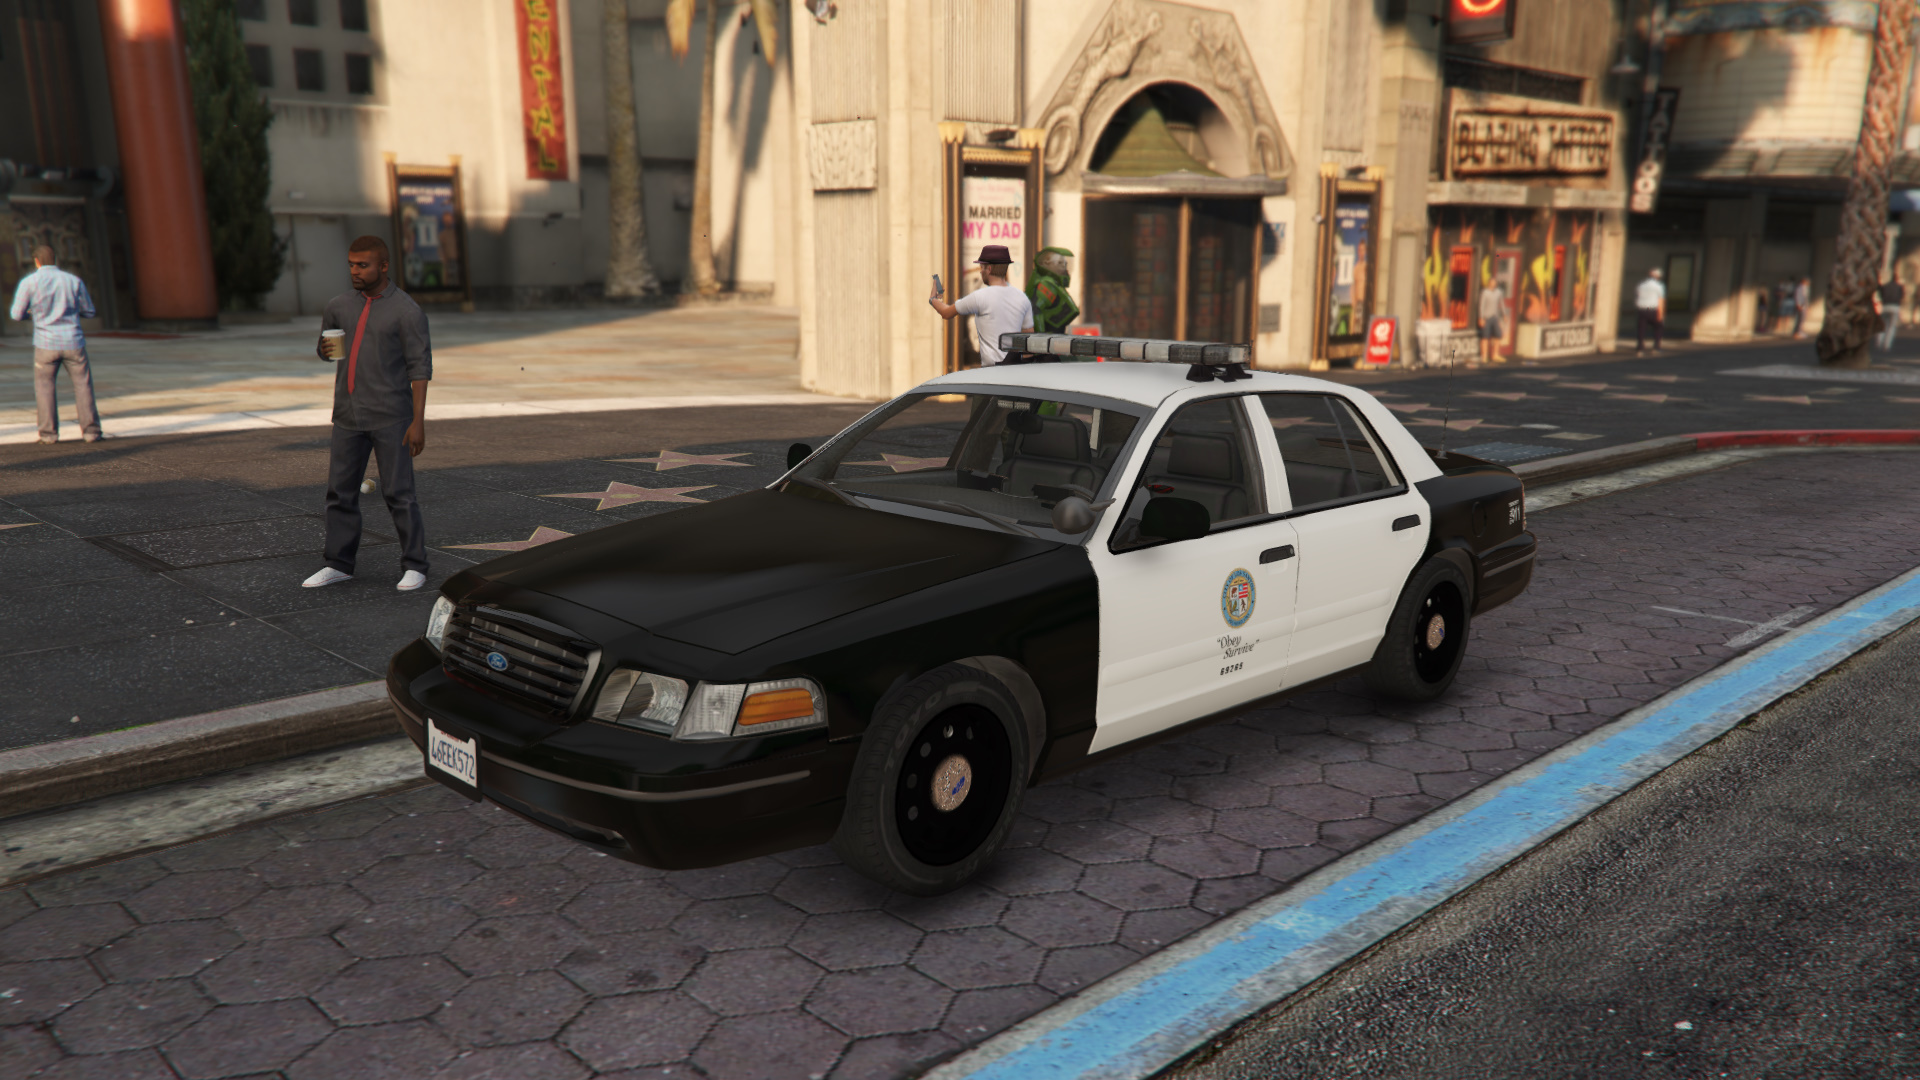 1999 ford crown victoria with whelen edge lightbar gta5 mods 32dae1 gta5 2015 09 10 12 07 25 678 mozeypictures Image collections